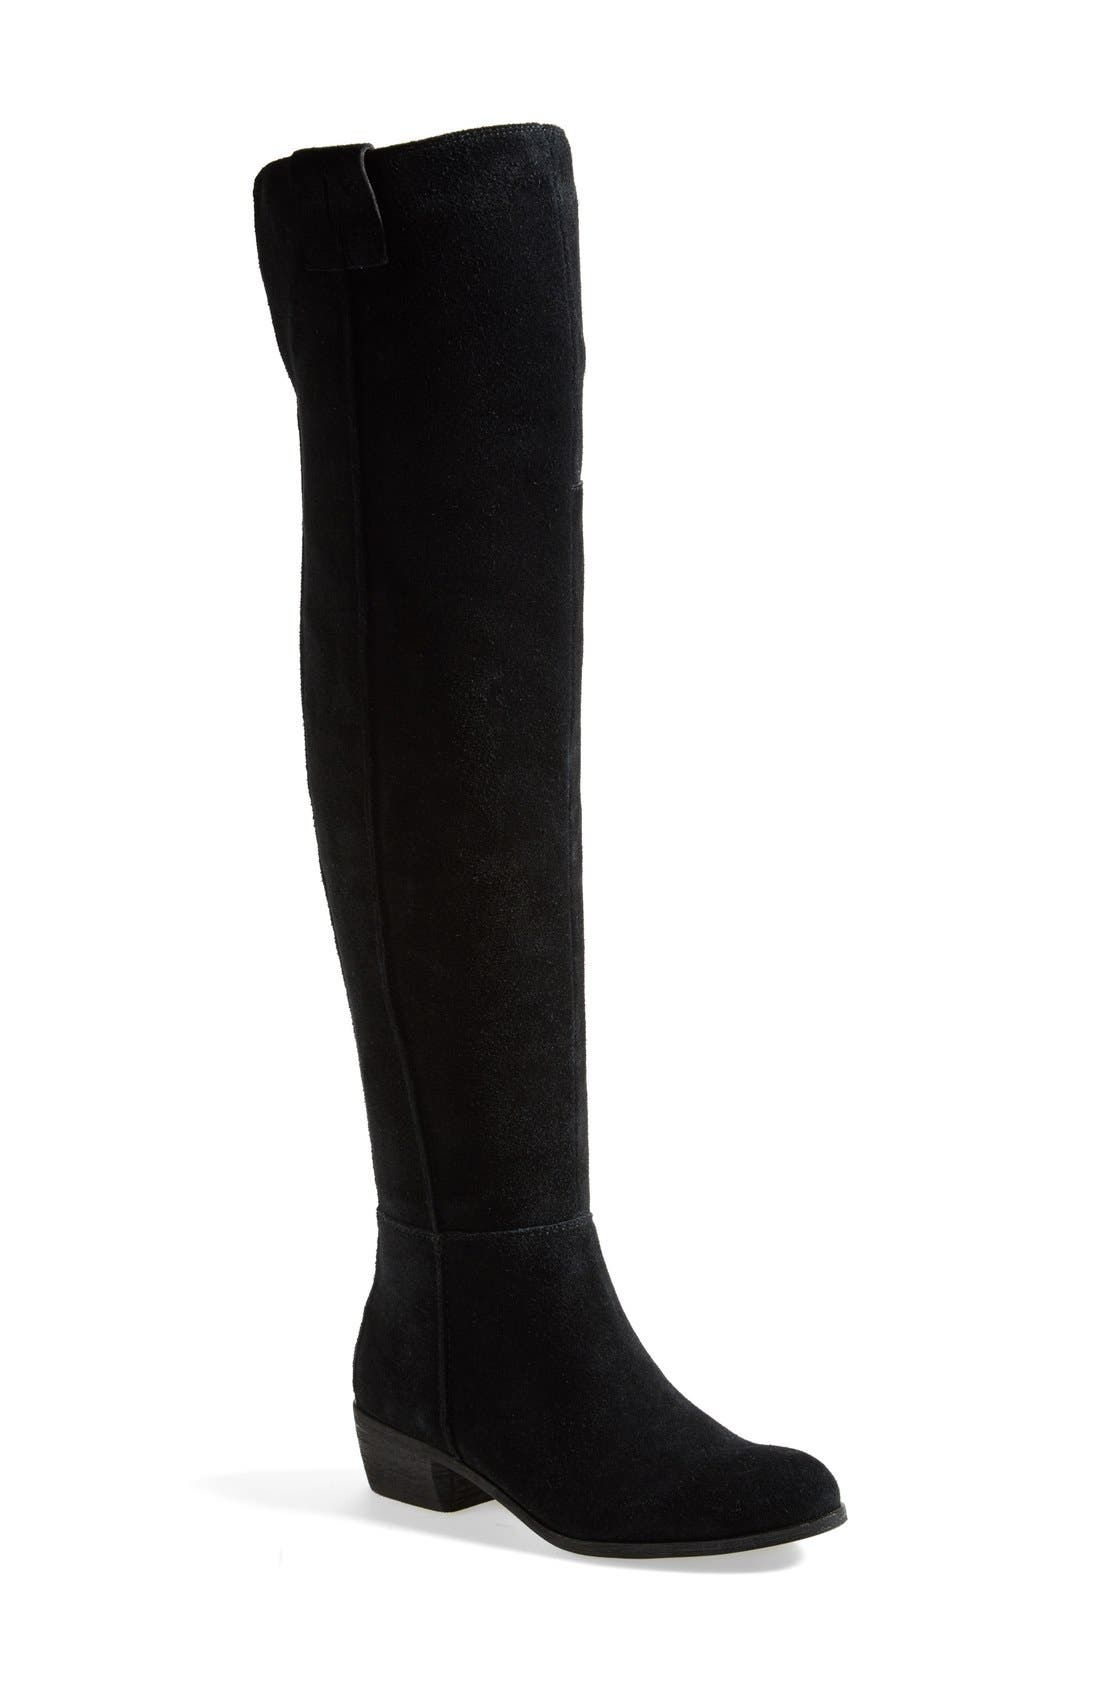 'Johanna' Over the Knee Suede Boot,                         Main,                         color,